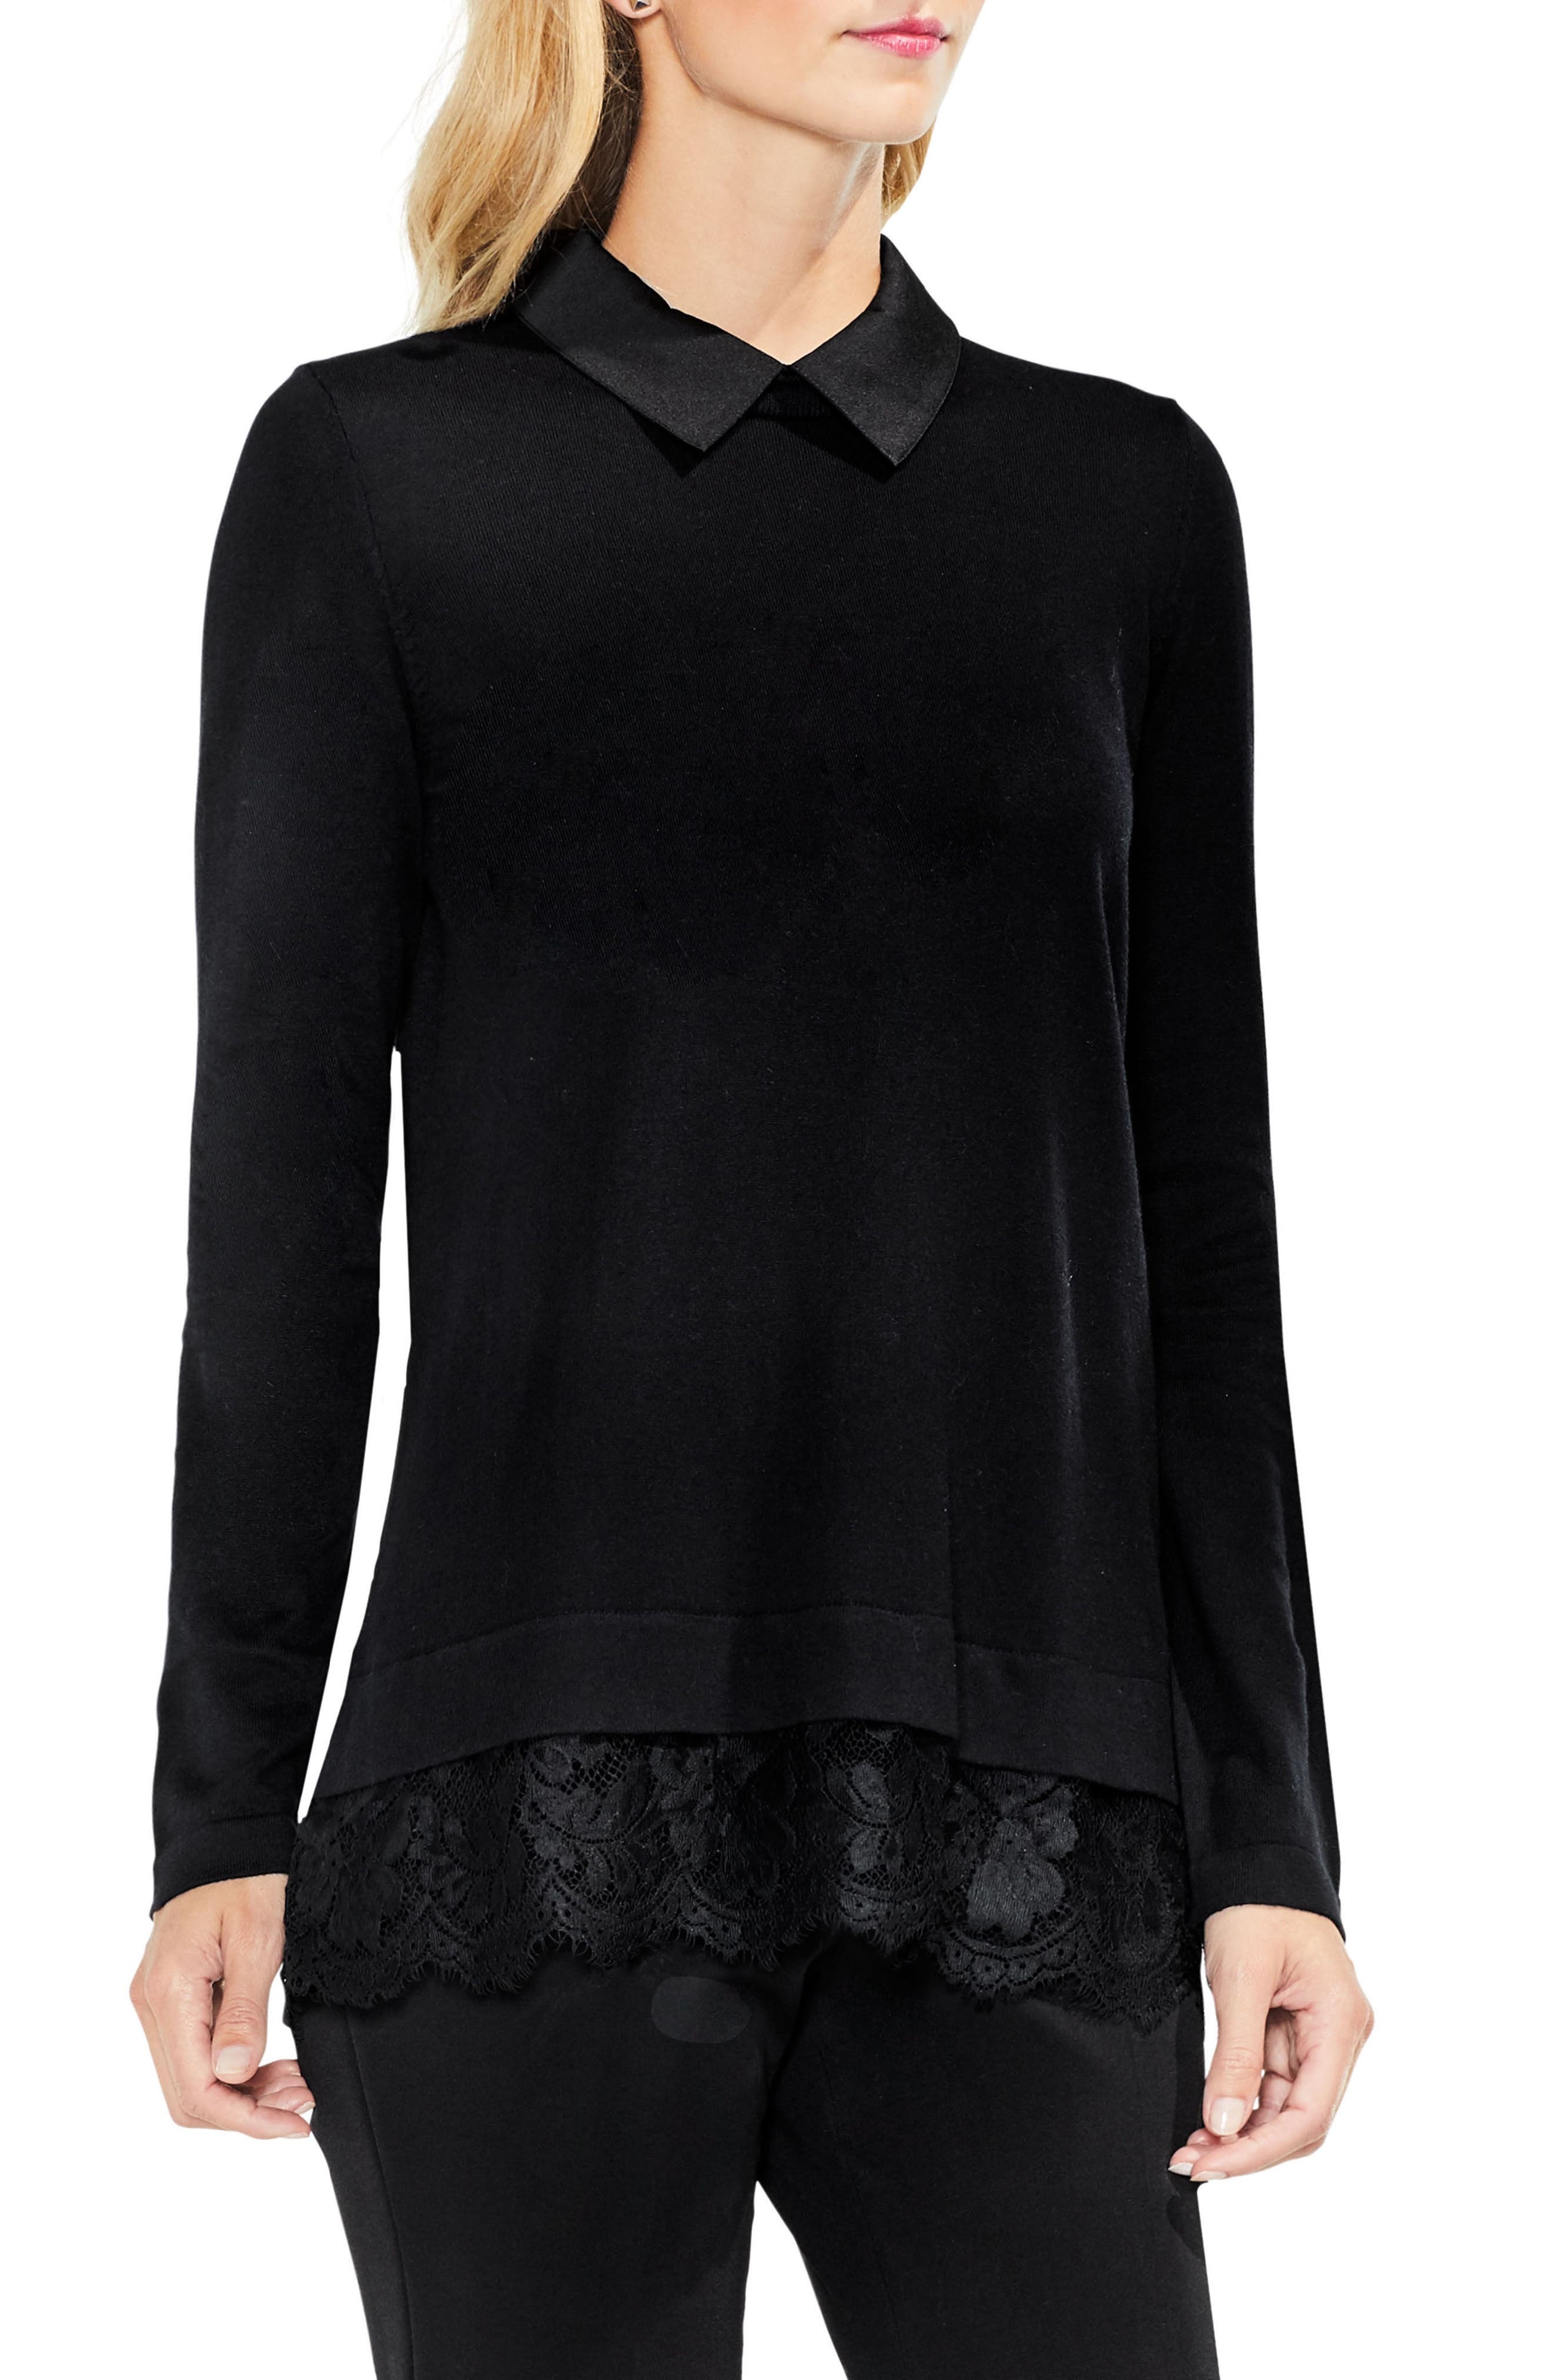 Main Image - Vince Camuto Lace Hem Collared Sweater